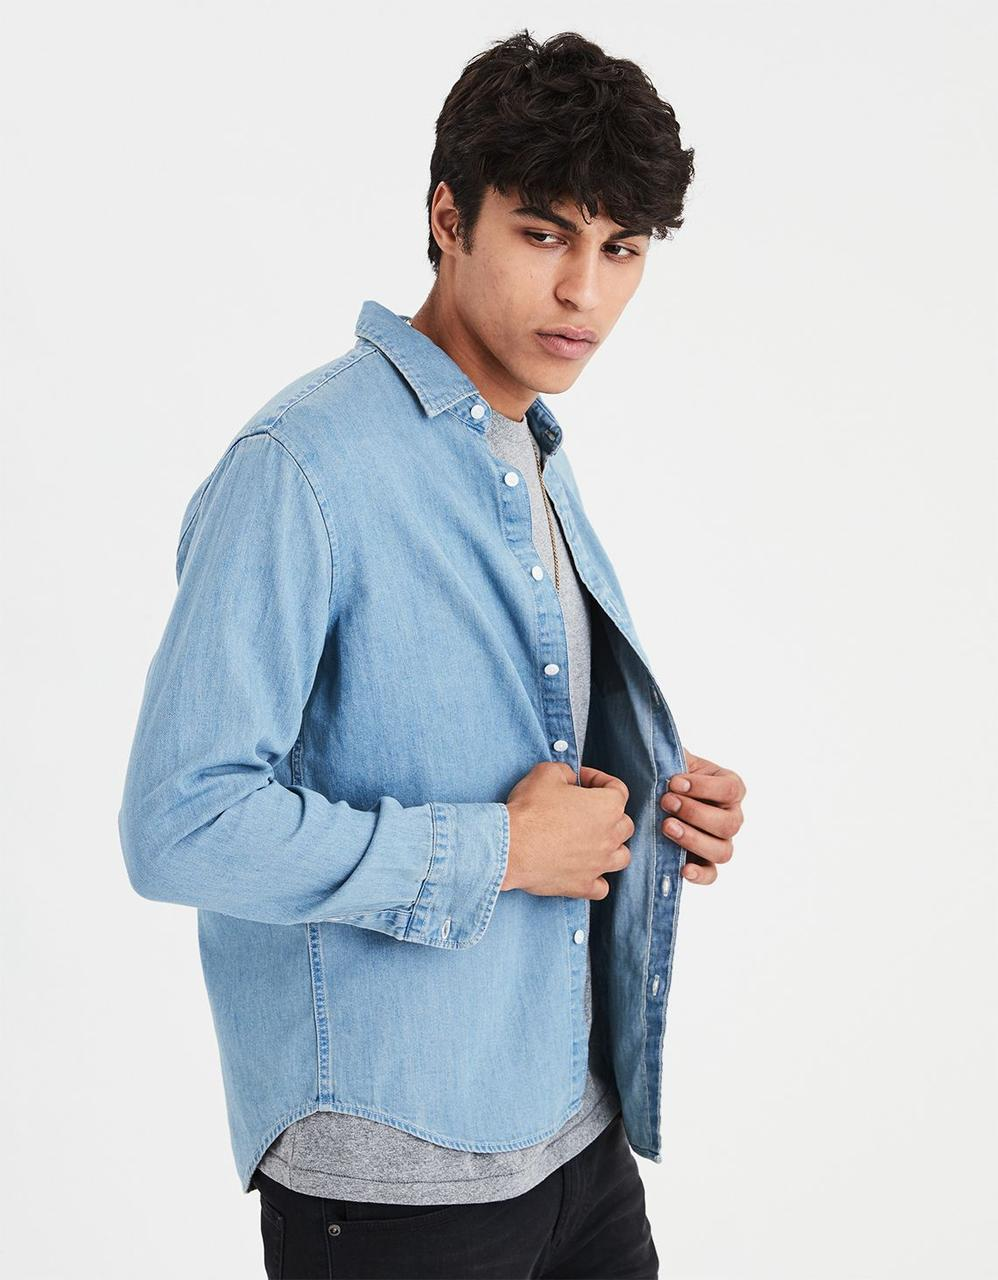 a9f26dc0 American Eagle Shirts, AE DENIM BUTTON-DOWN SHIRT for Men at Aeo.in